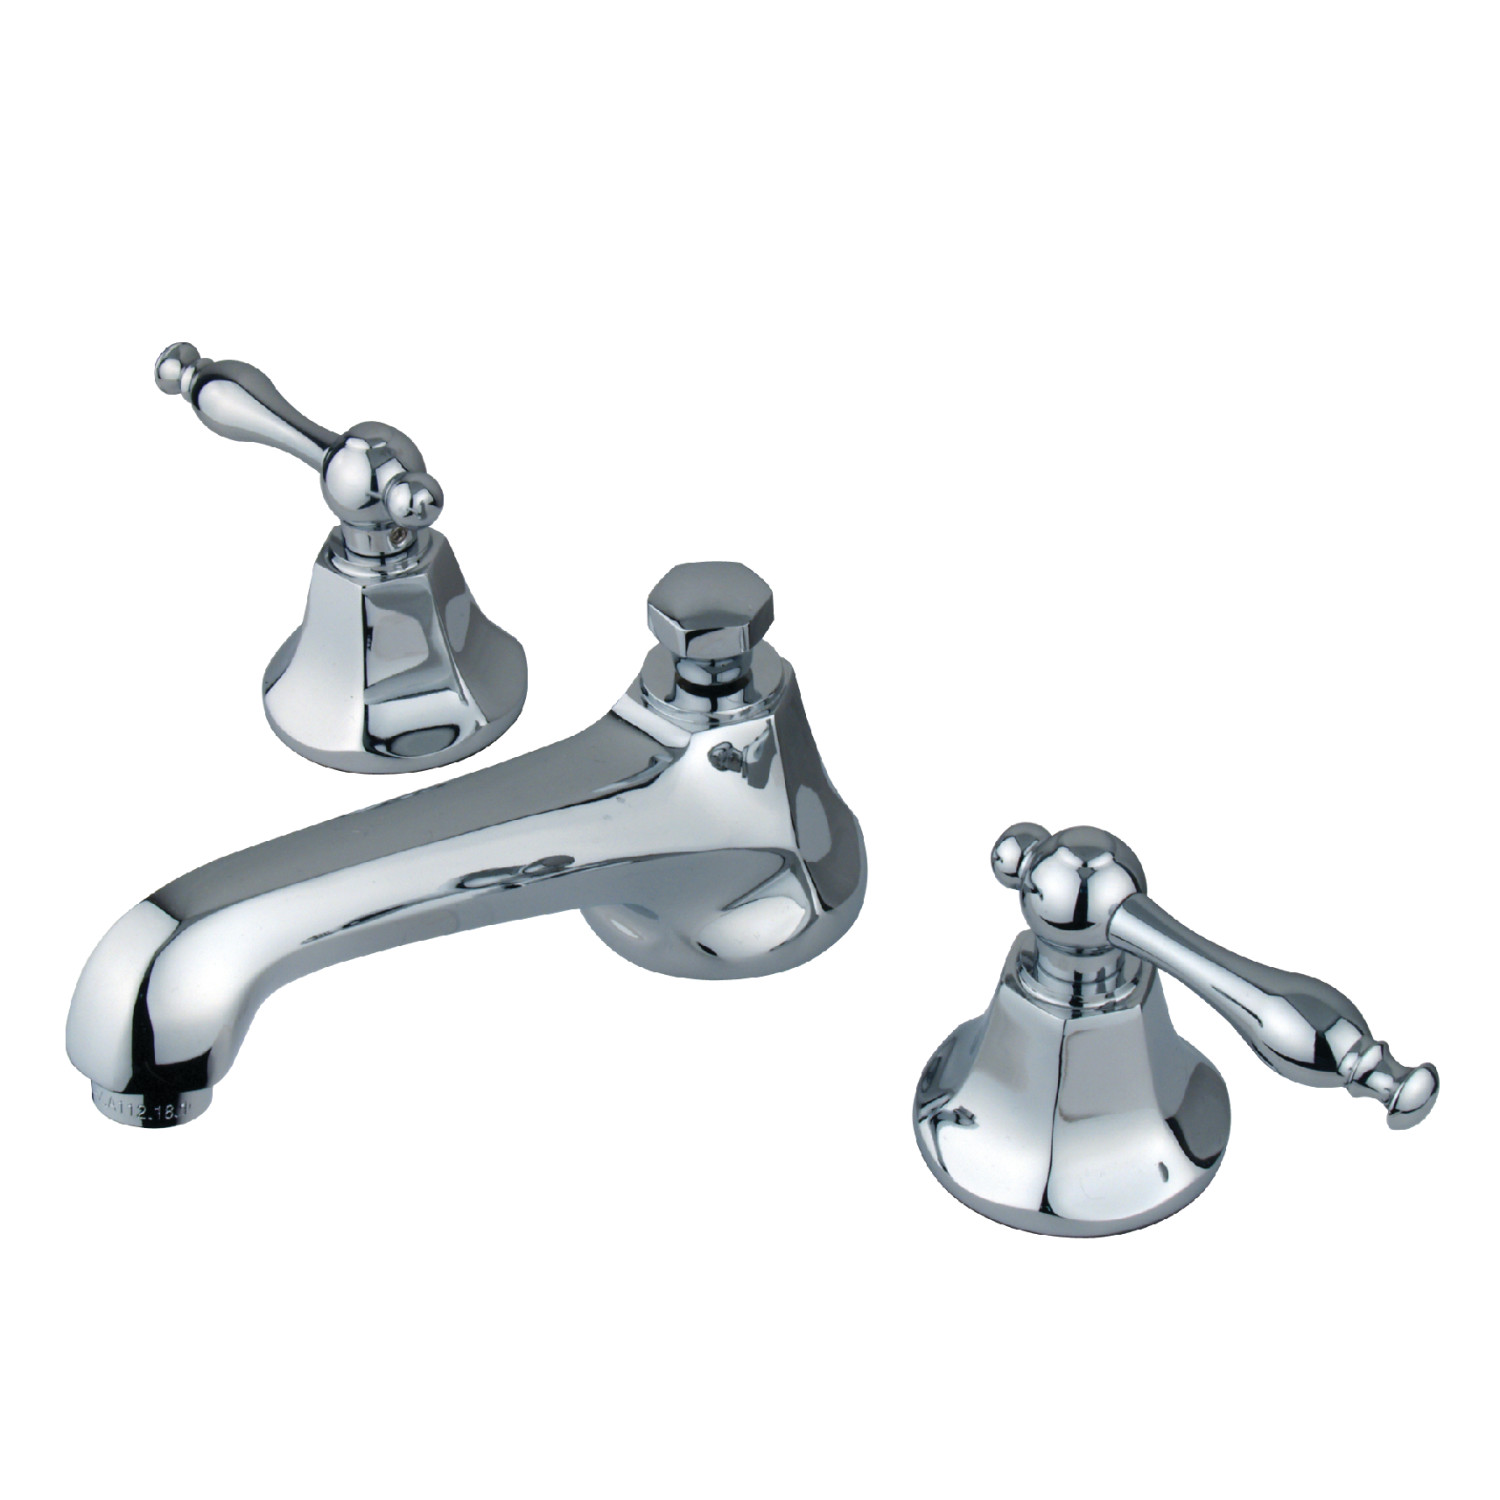 Modern Two-Handle Three-Hole Deck Mounted Widespread Bathroom Faucet with Brass Pop-Up in Polished Chrome with 4 Finish Option